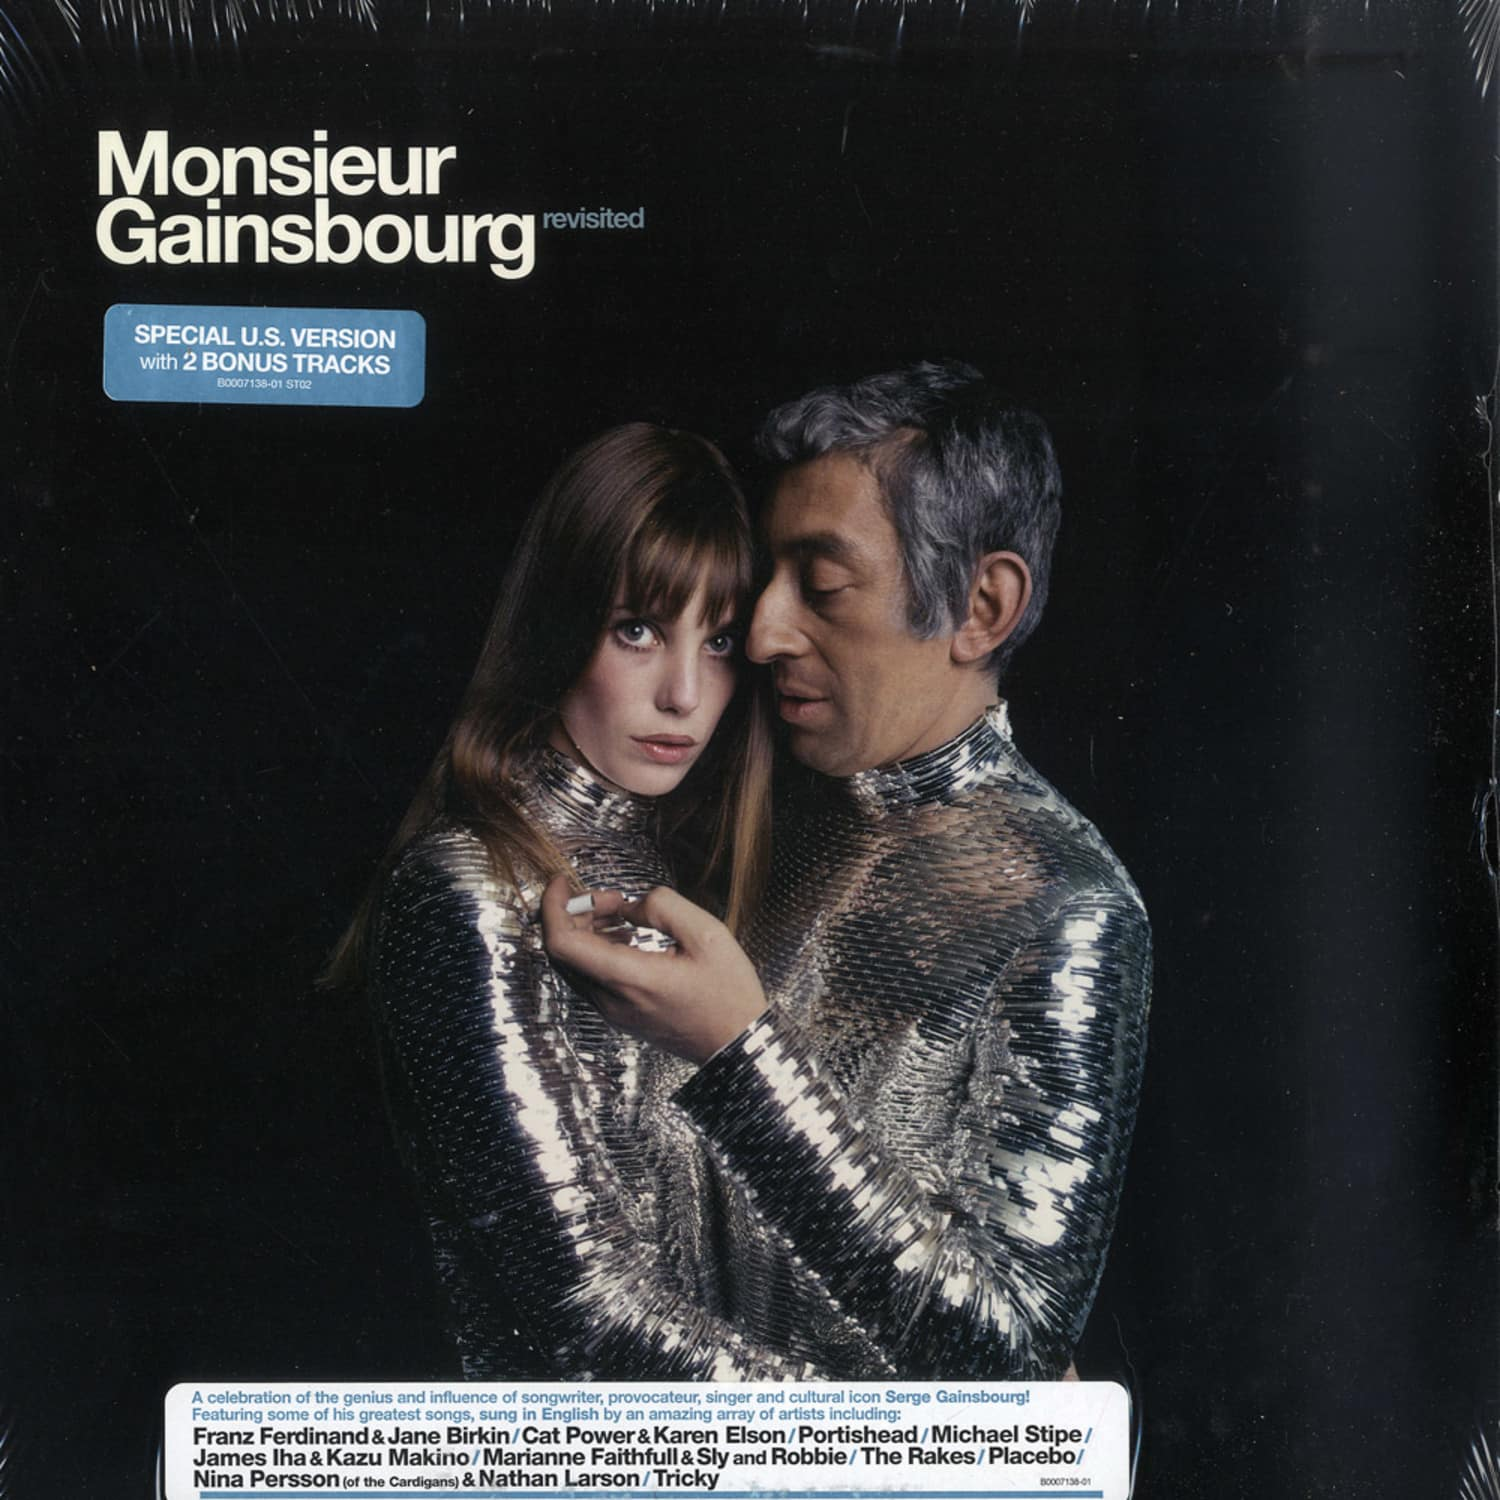 Monsieur Gainsbourg - REVISITED